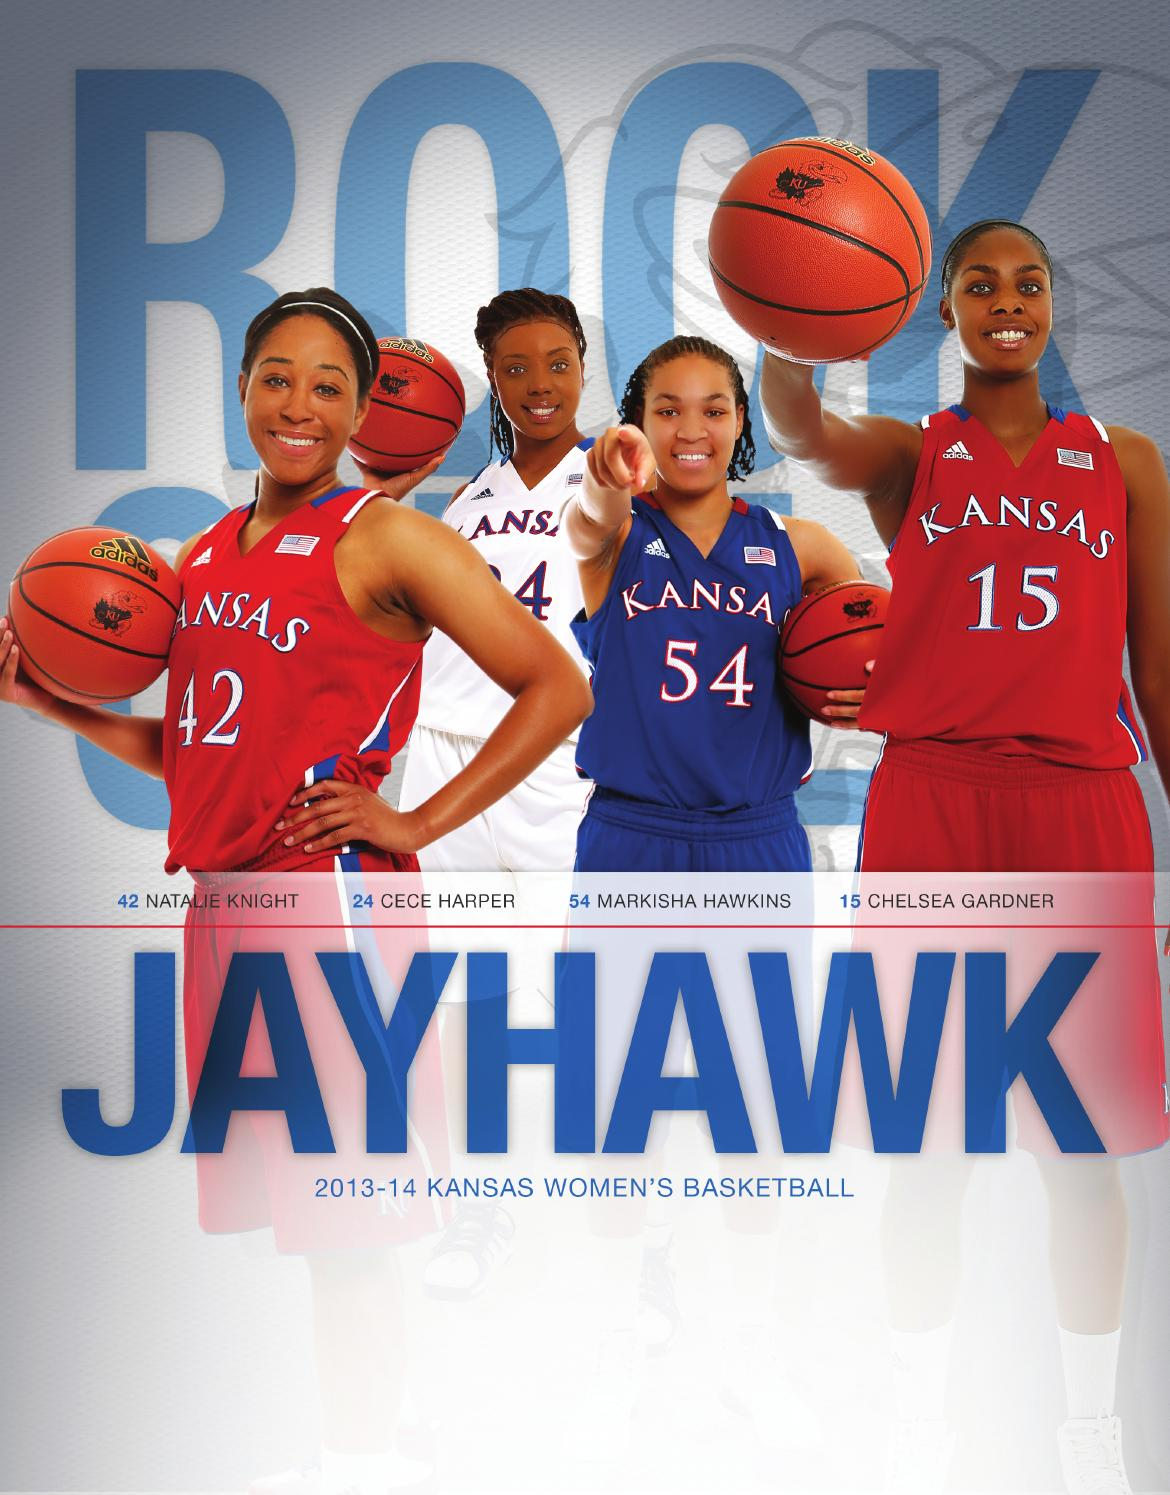 d31b92ae16b 2013 14 Kansas women s basketball guide by Kansas Jayhawks - issuu